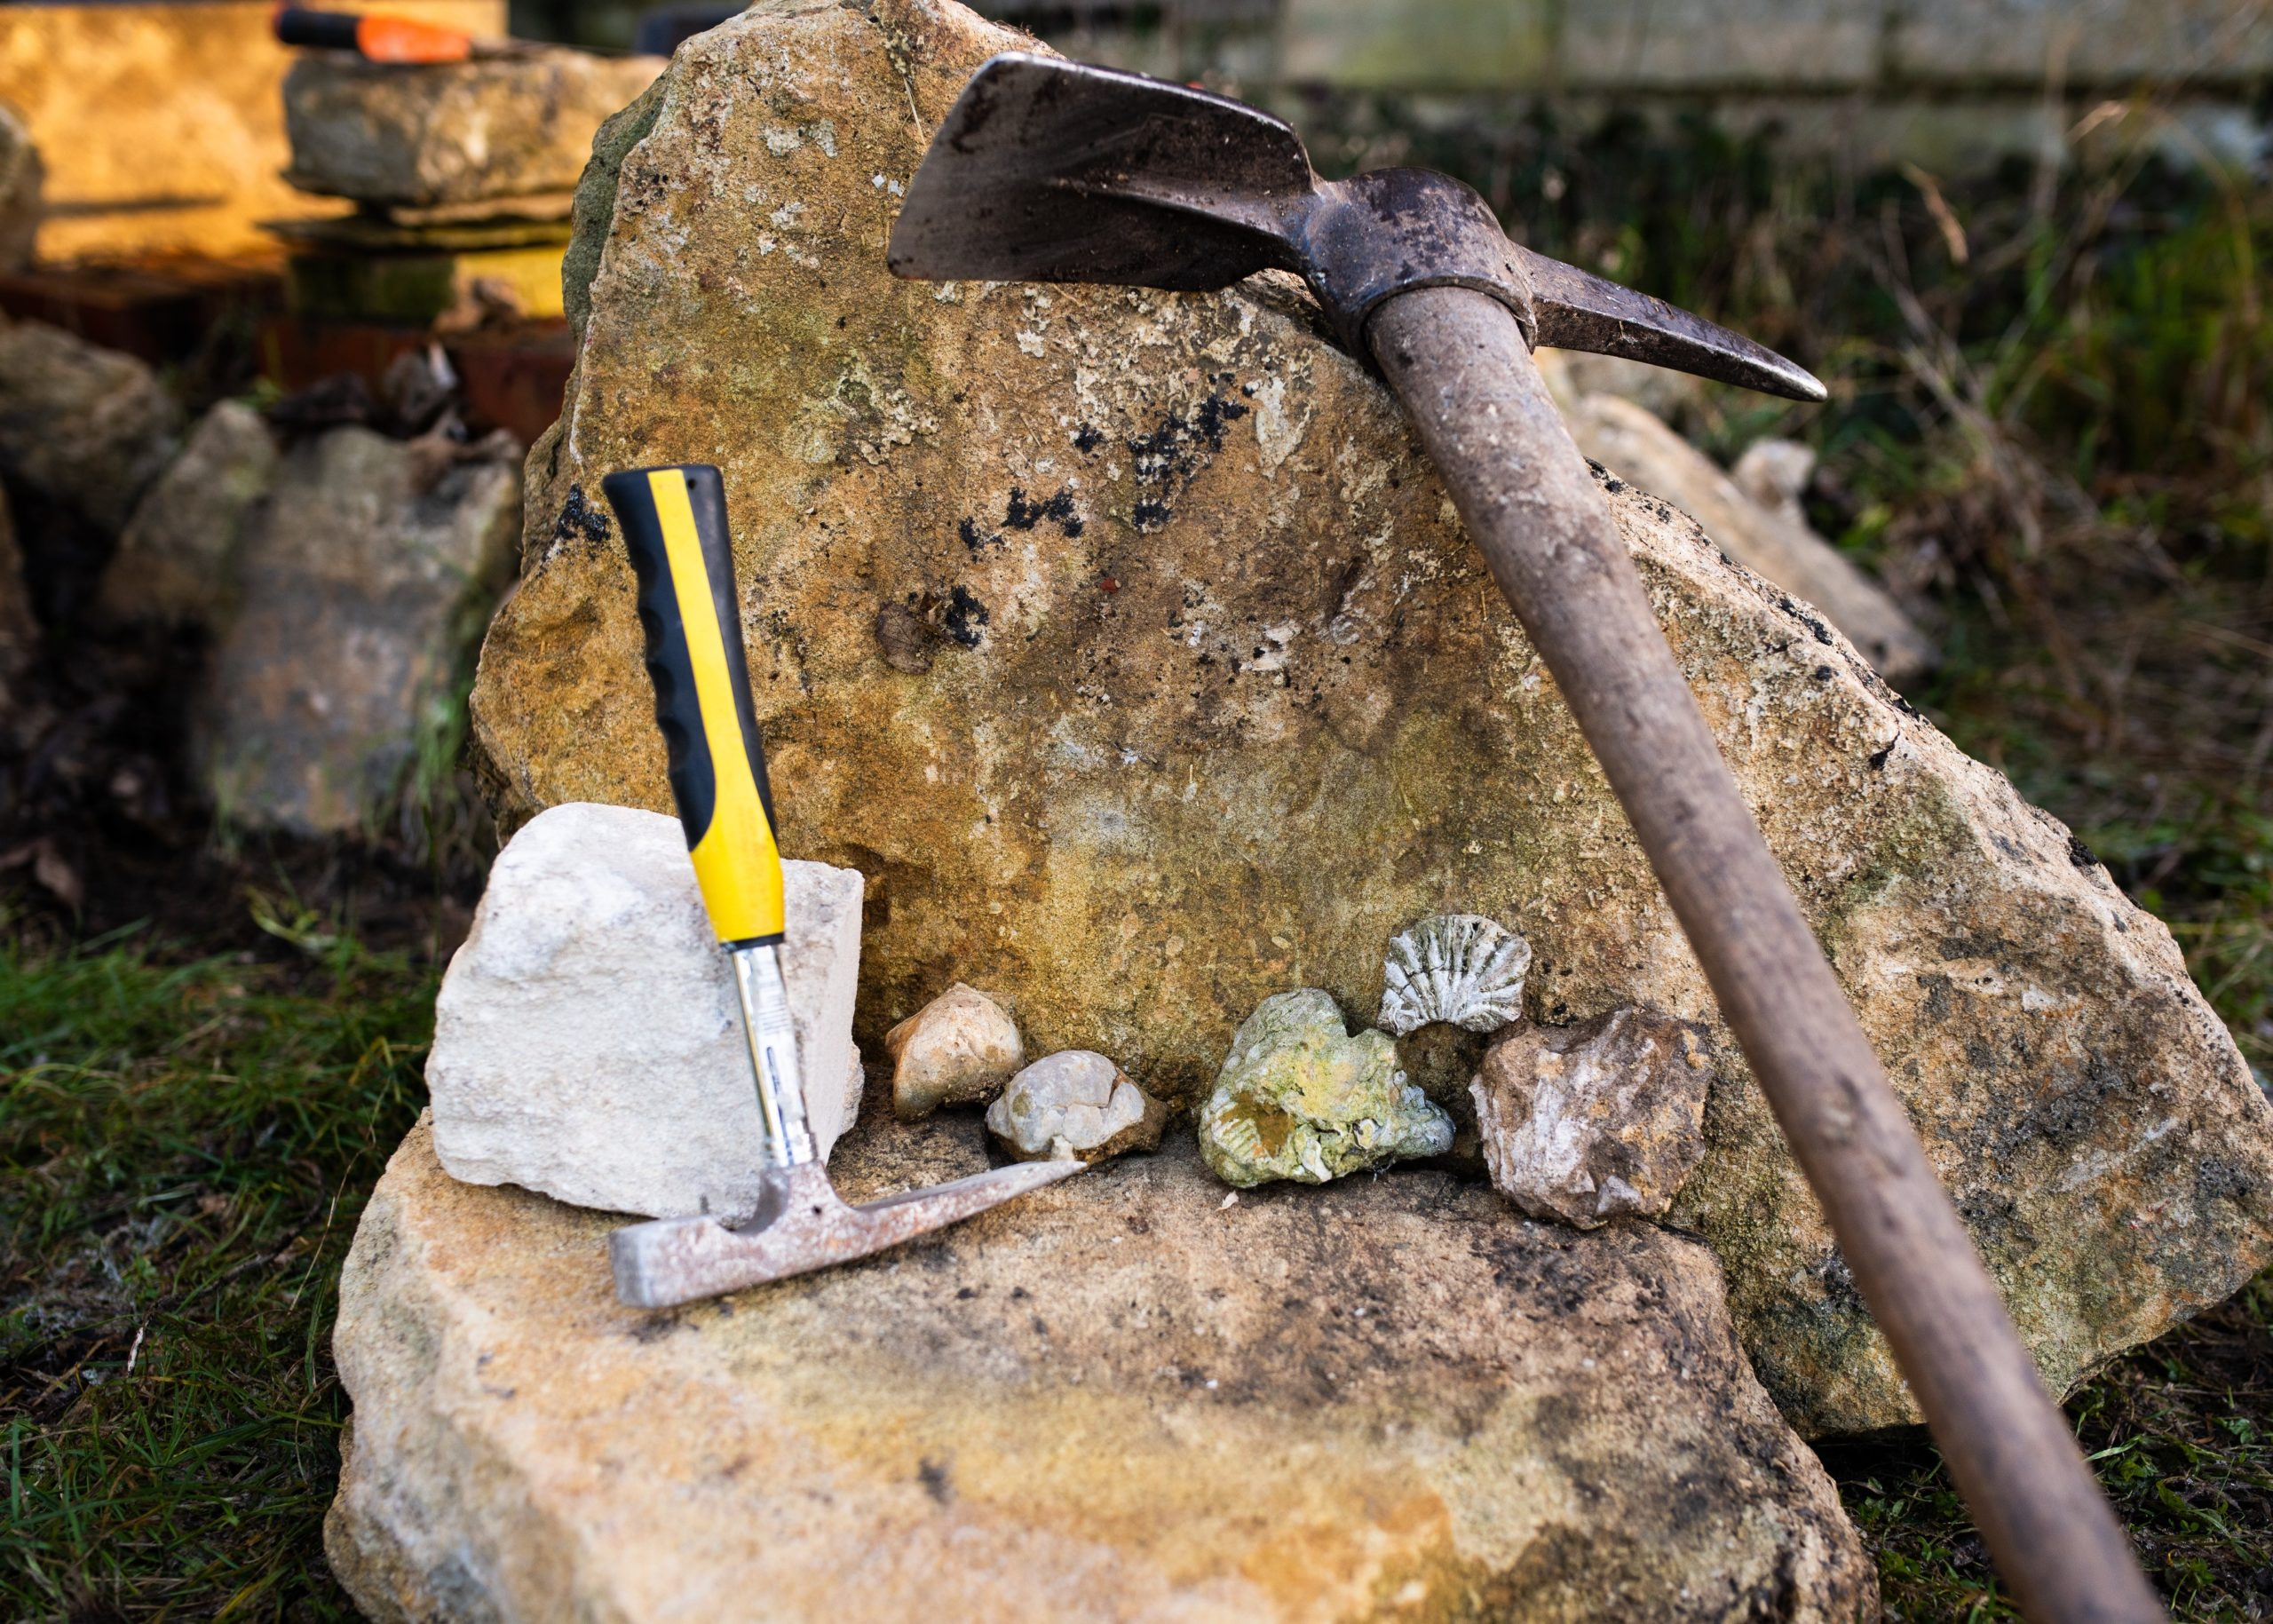 Image of stone carving tools resting against large rock in the autumn sun